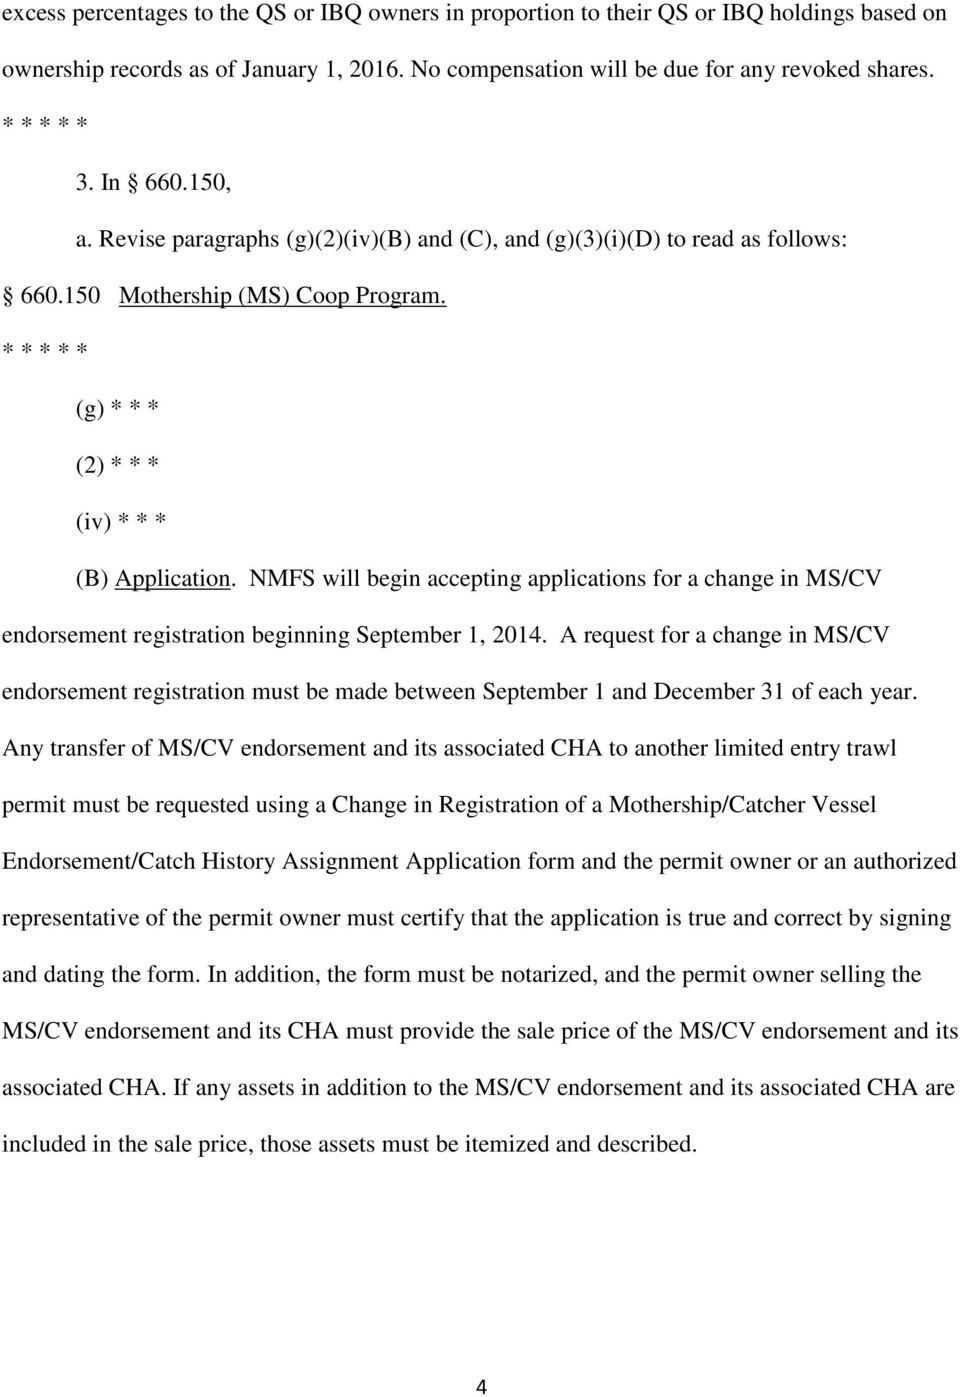 NMFS will begin accepting applications for a change in MS/CV endorsement registration beginning September 1, 2014.